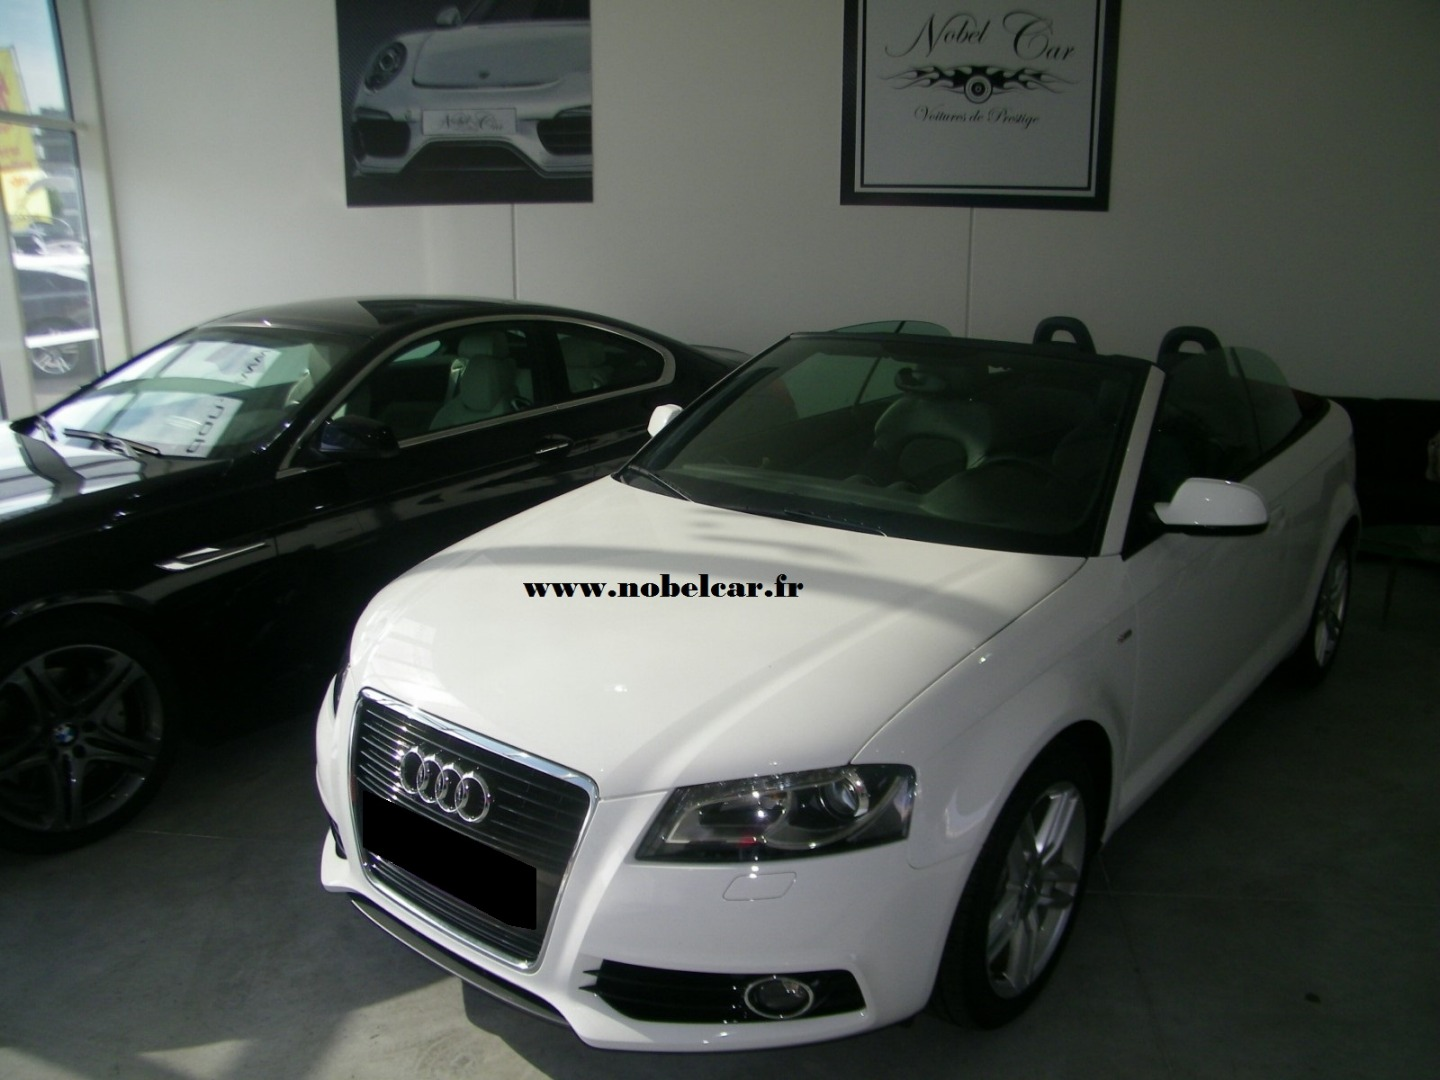 AUDI A3 Cabriolet 2.0 TDI S Line 140 CH d'occasion gironde 33